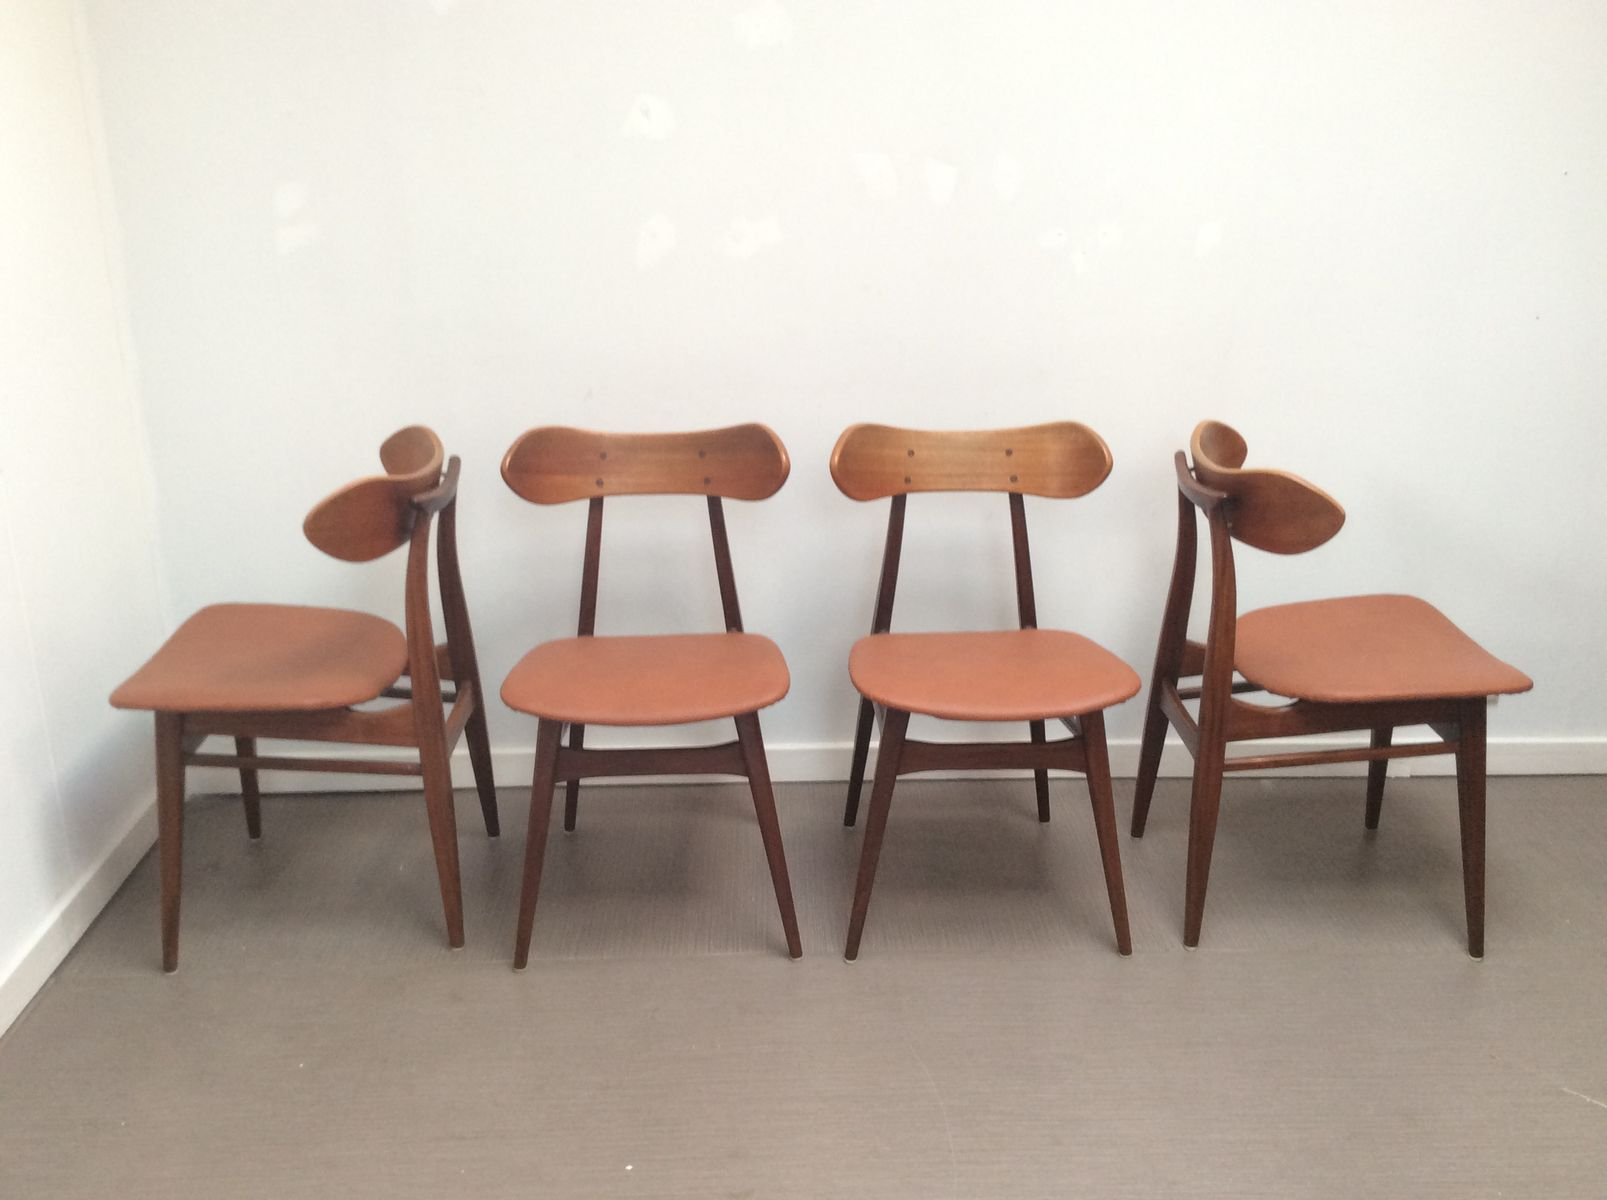 Mid Century Dining Chairs By Louis Van Teeffelen For Wébé, Set Of 4